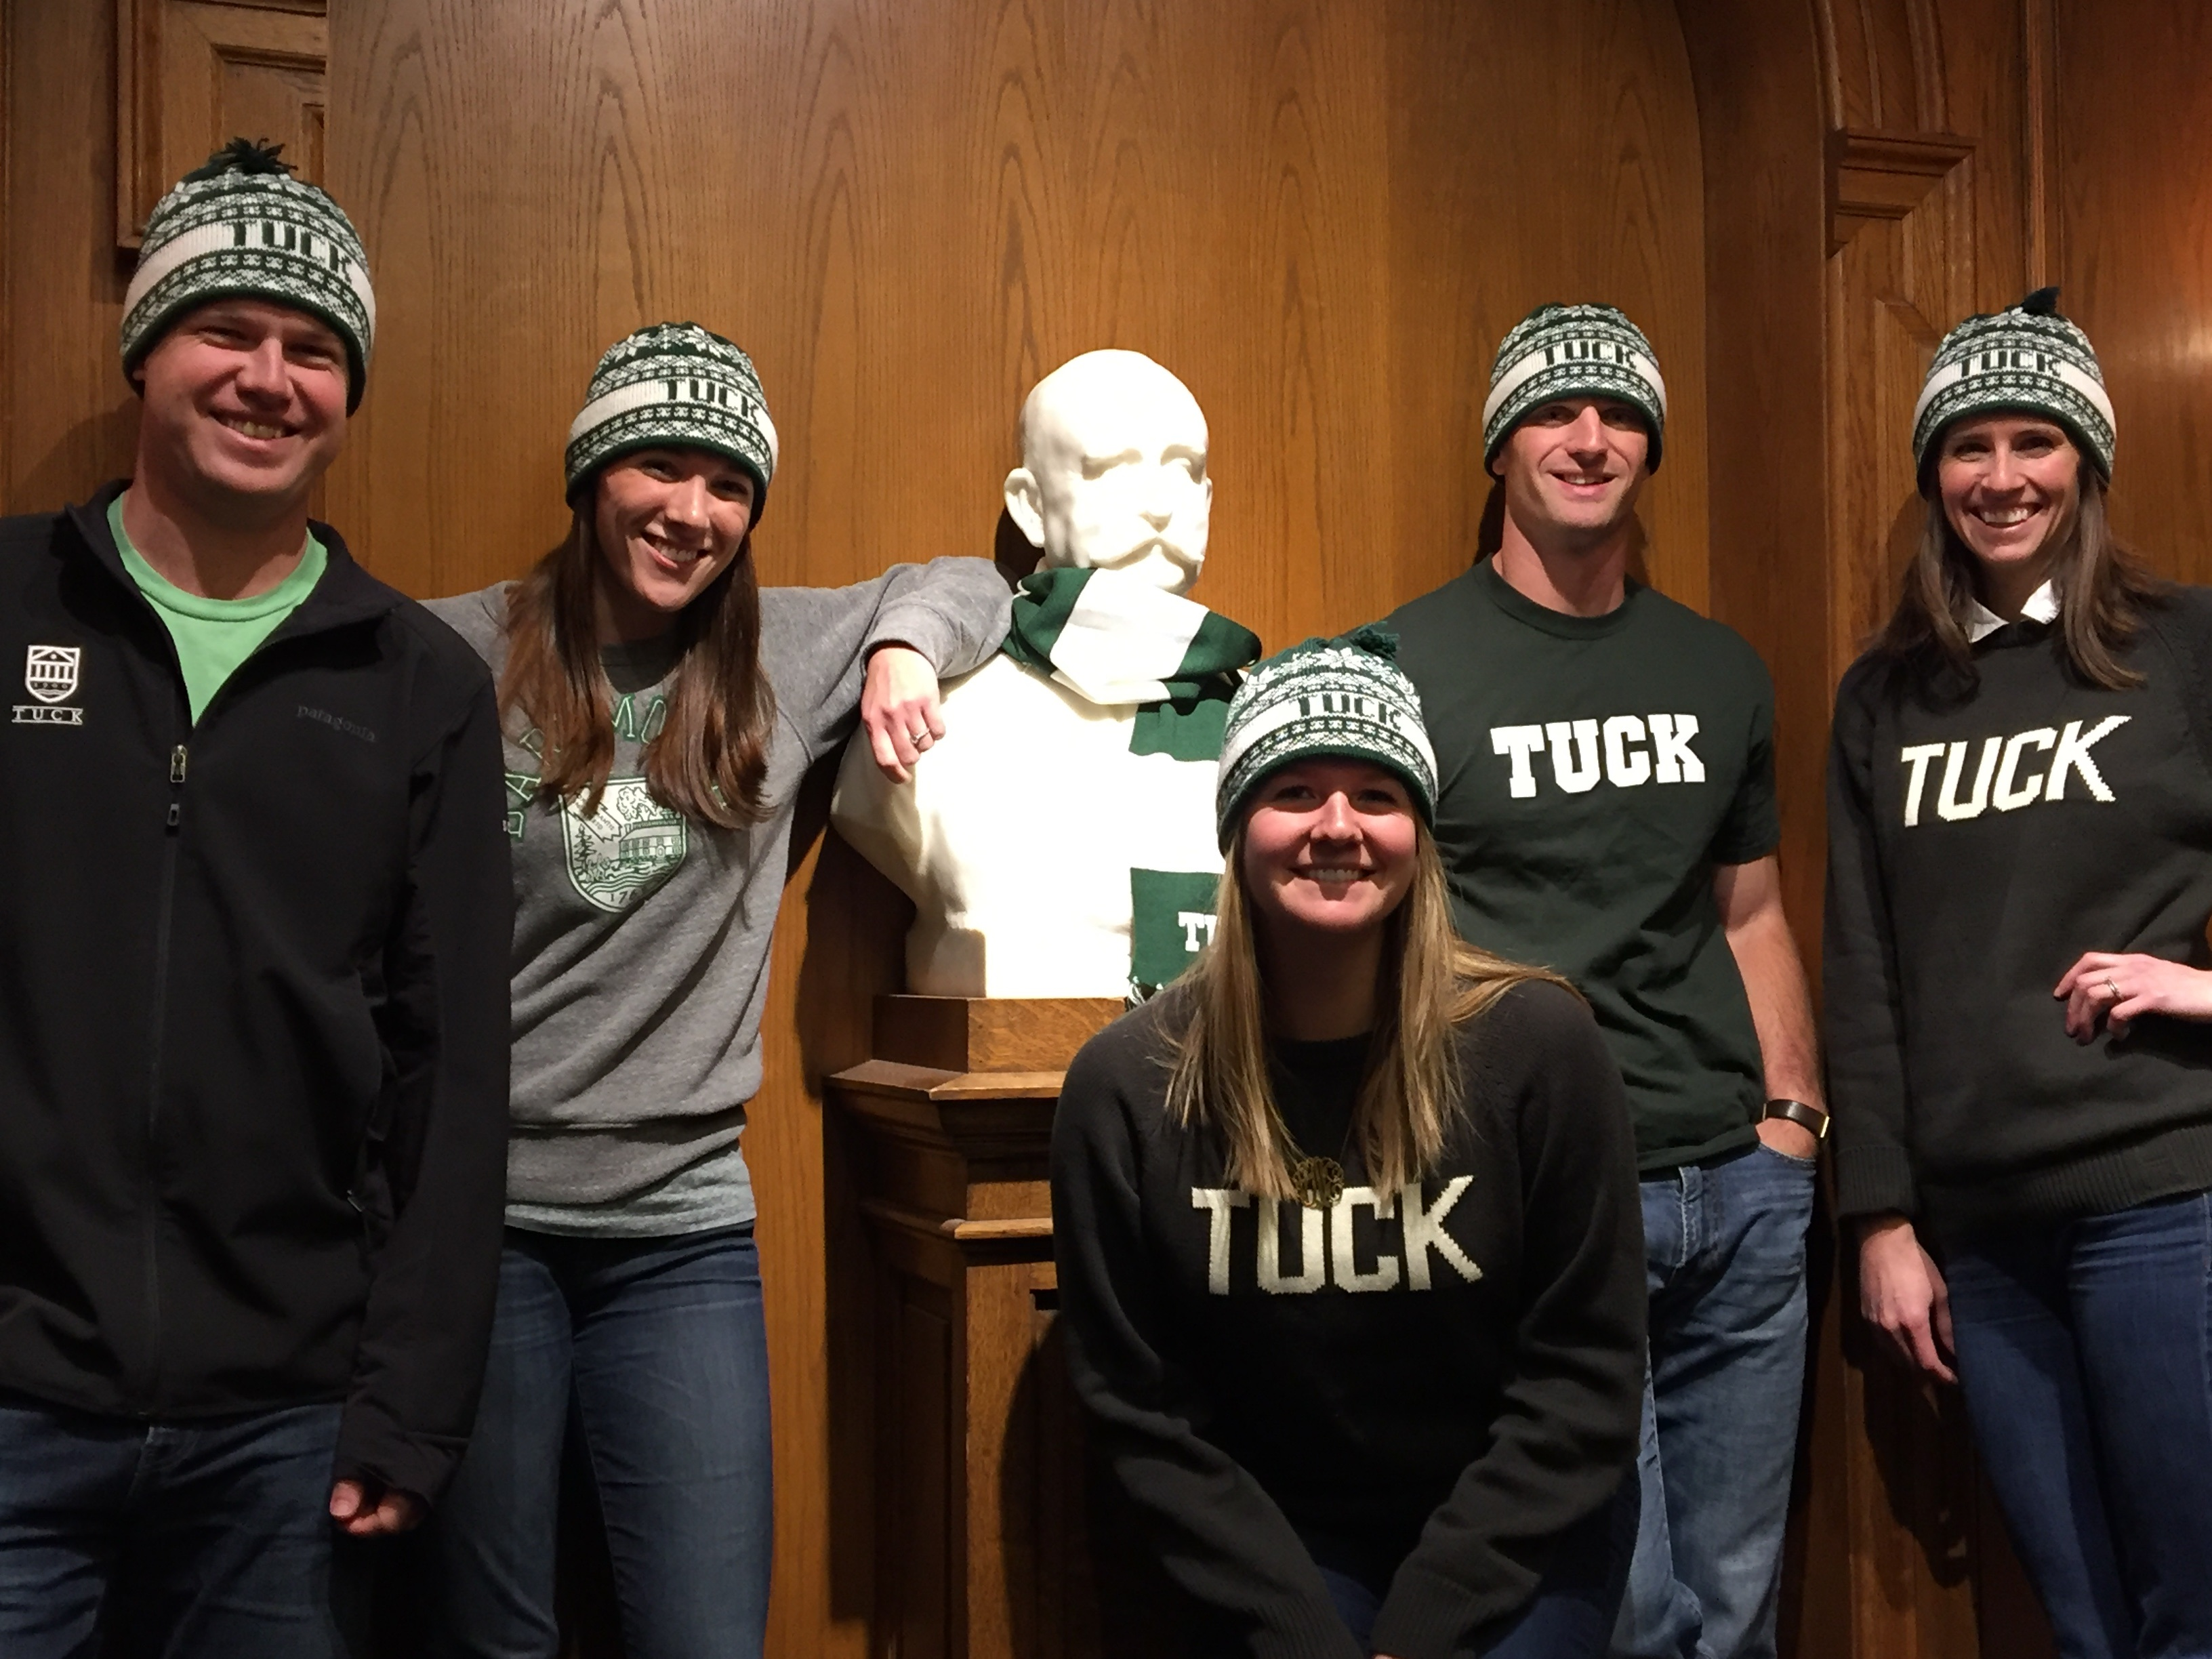 tuck 2012 essays Mike kullen/associated press 8 snow plow game of 1982 a classic nor'easter blasted new england with a heaping helping of snow for a showdown with the division-rival miami dolphins on dec 12, 1982 the result was one of the more comical of the controversial moments in nfl history deadlocked at 0-0 with less than five minutes to play, the.